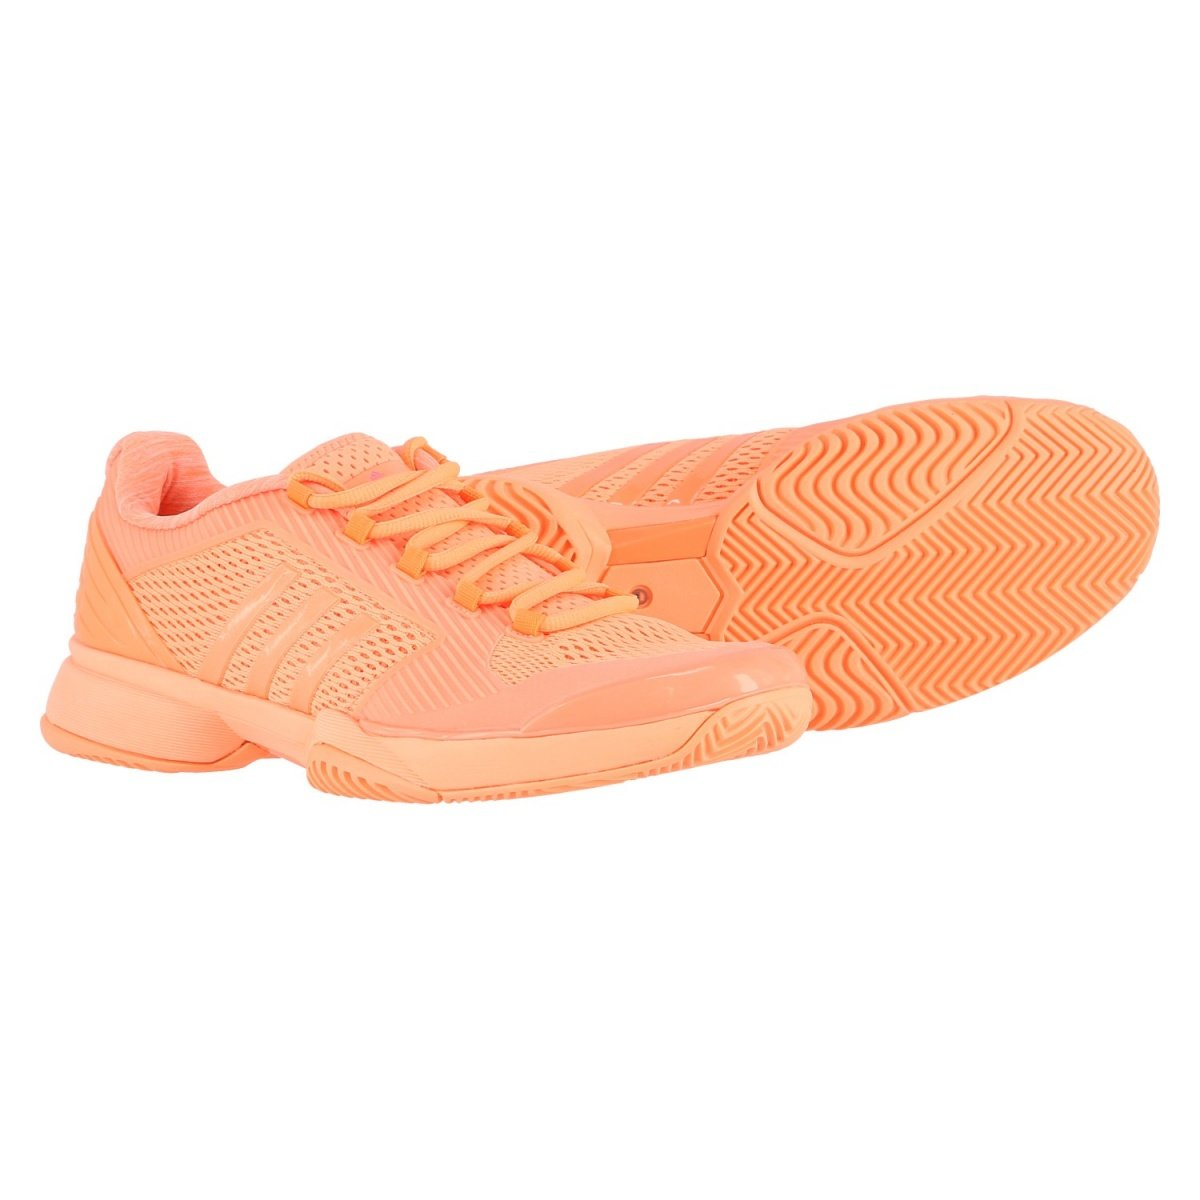 adidas by Stella McCartney Barricade Damen Tennisschuhe